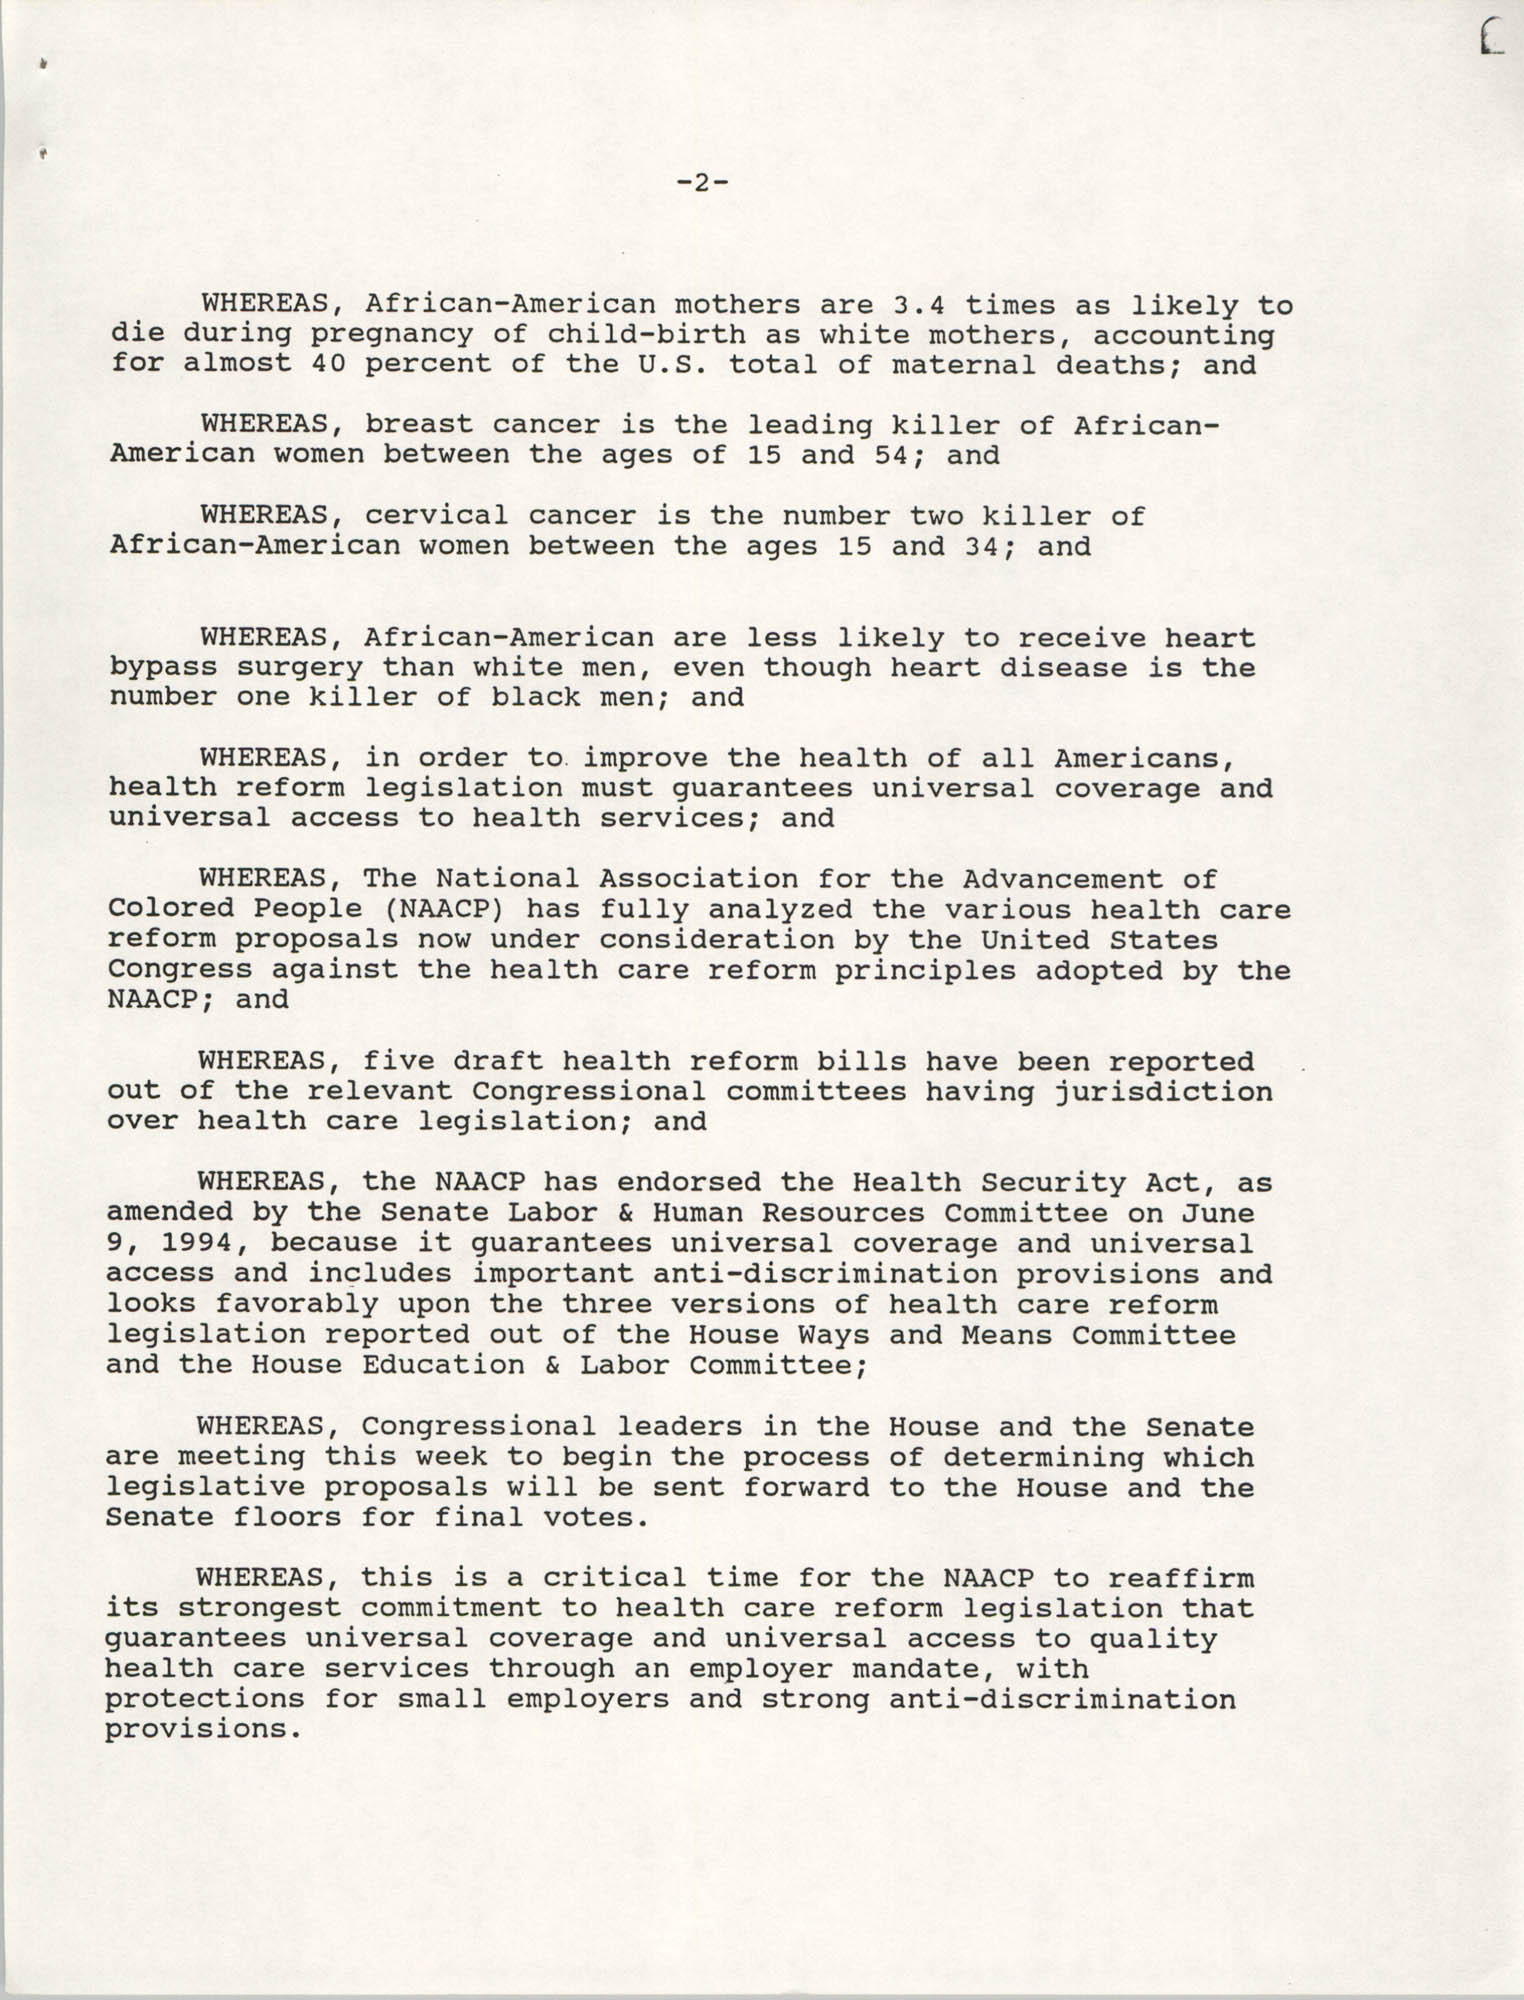 Emergency Resolution, 85th Annual Convention of the NAACP, Health Care Reform, Page 2